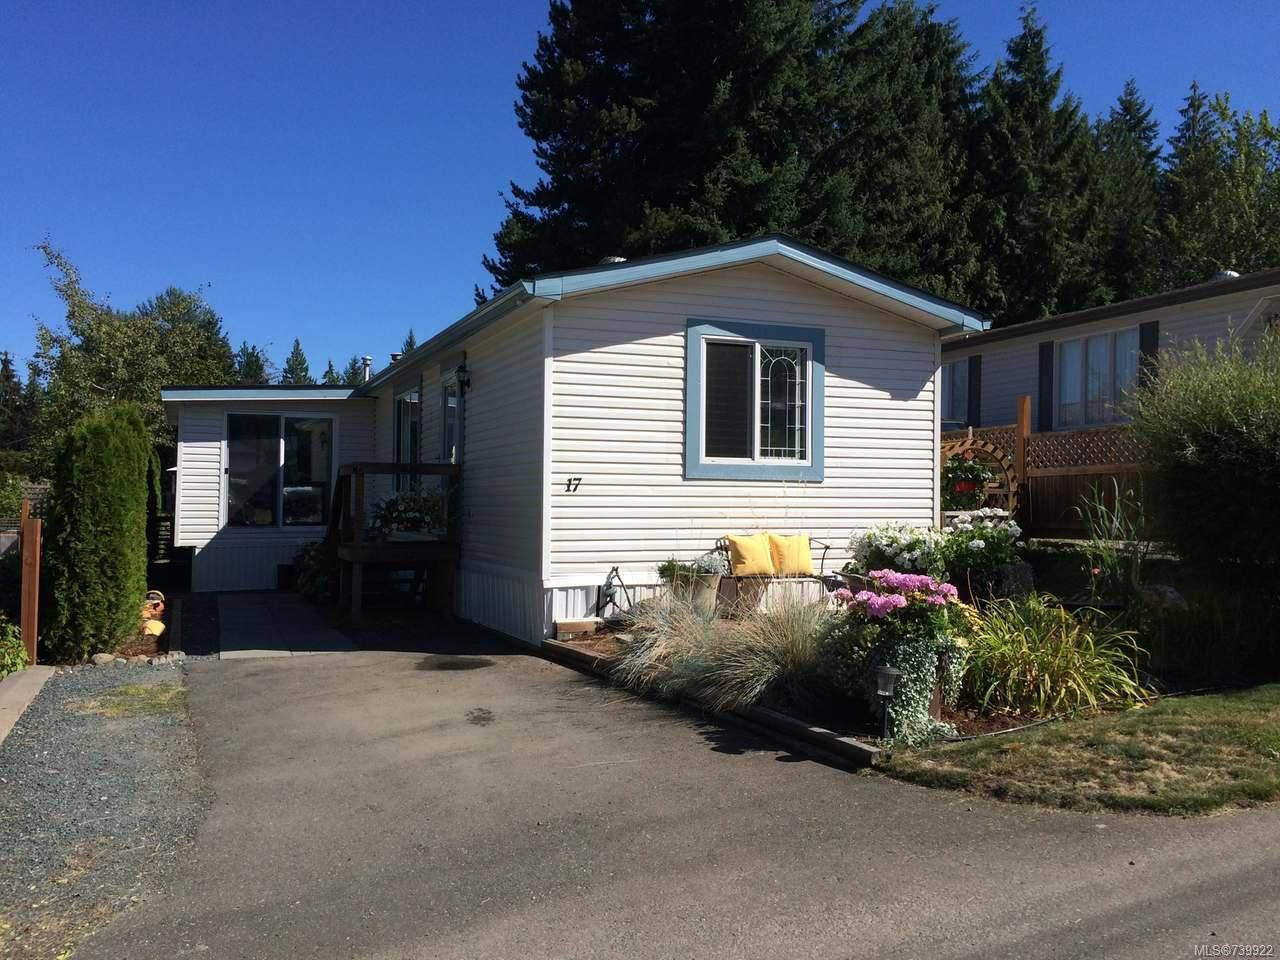 Main Photo: 17 3100 RINVOLD ROAD in HILLIERS: PQ Errington/Coombs/Hilliers Manufactured Home for sale (Parksville/Qualicum)  : MLS®# 739922